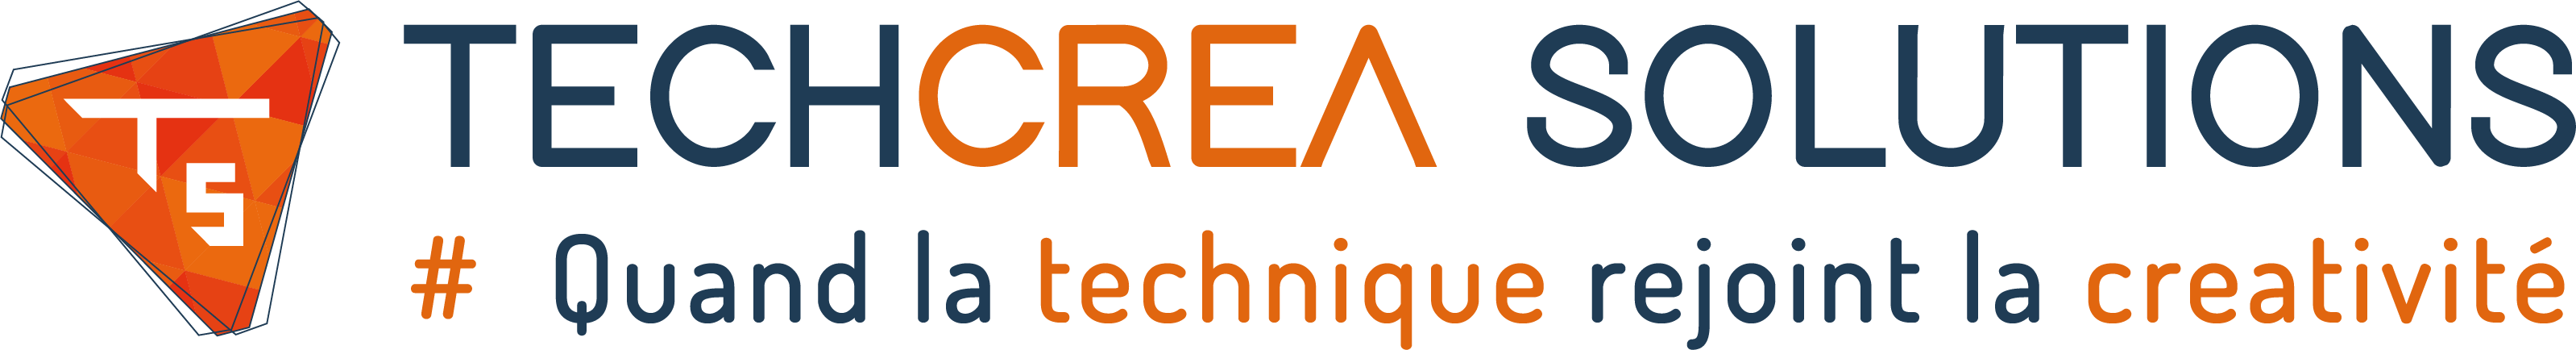 logo techcrea solutions